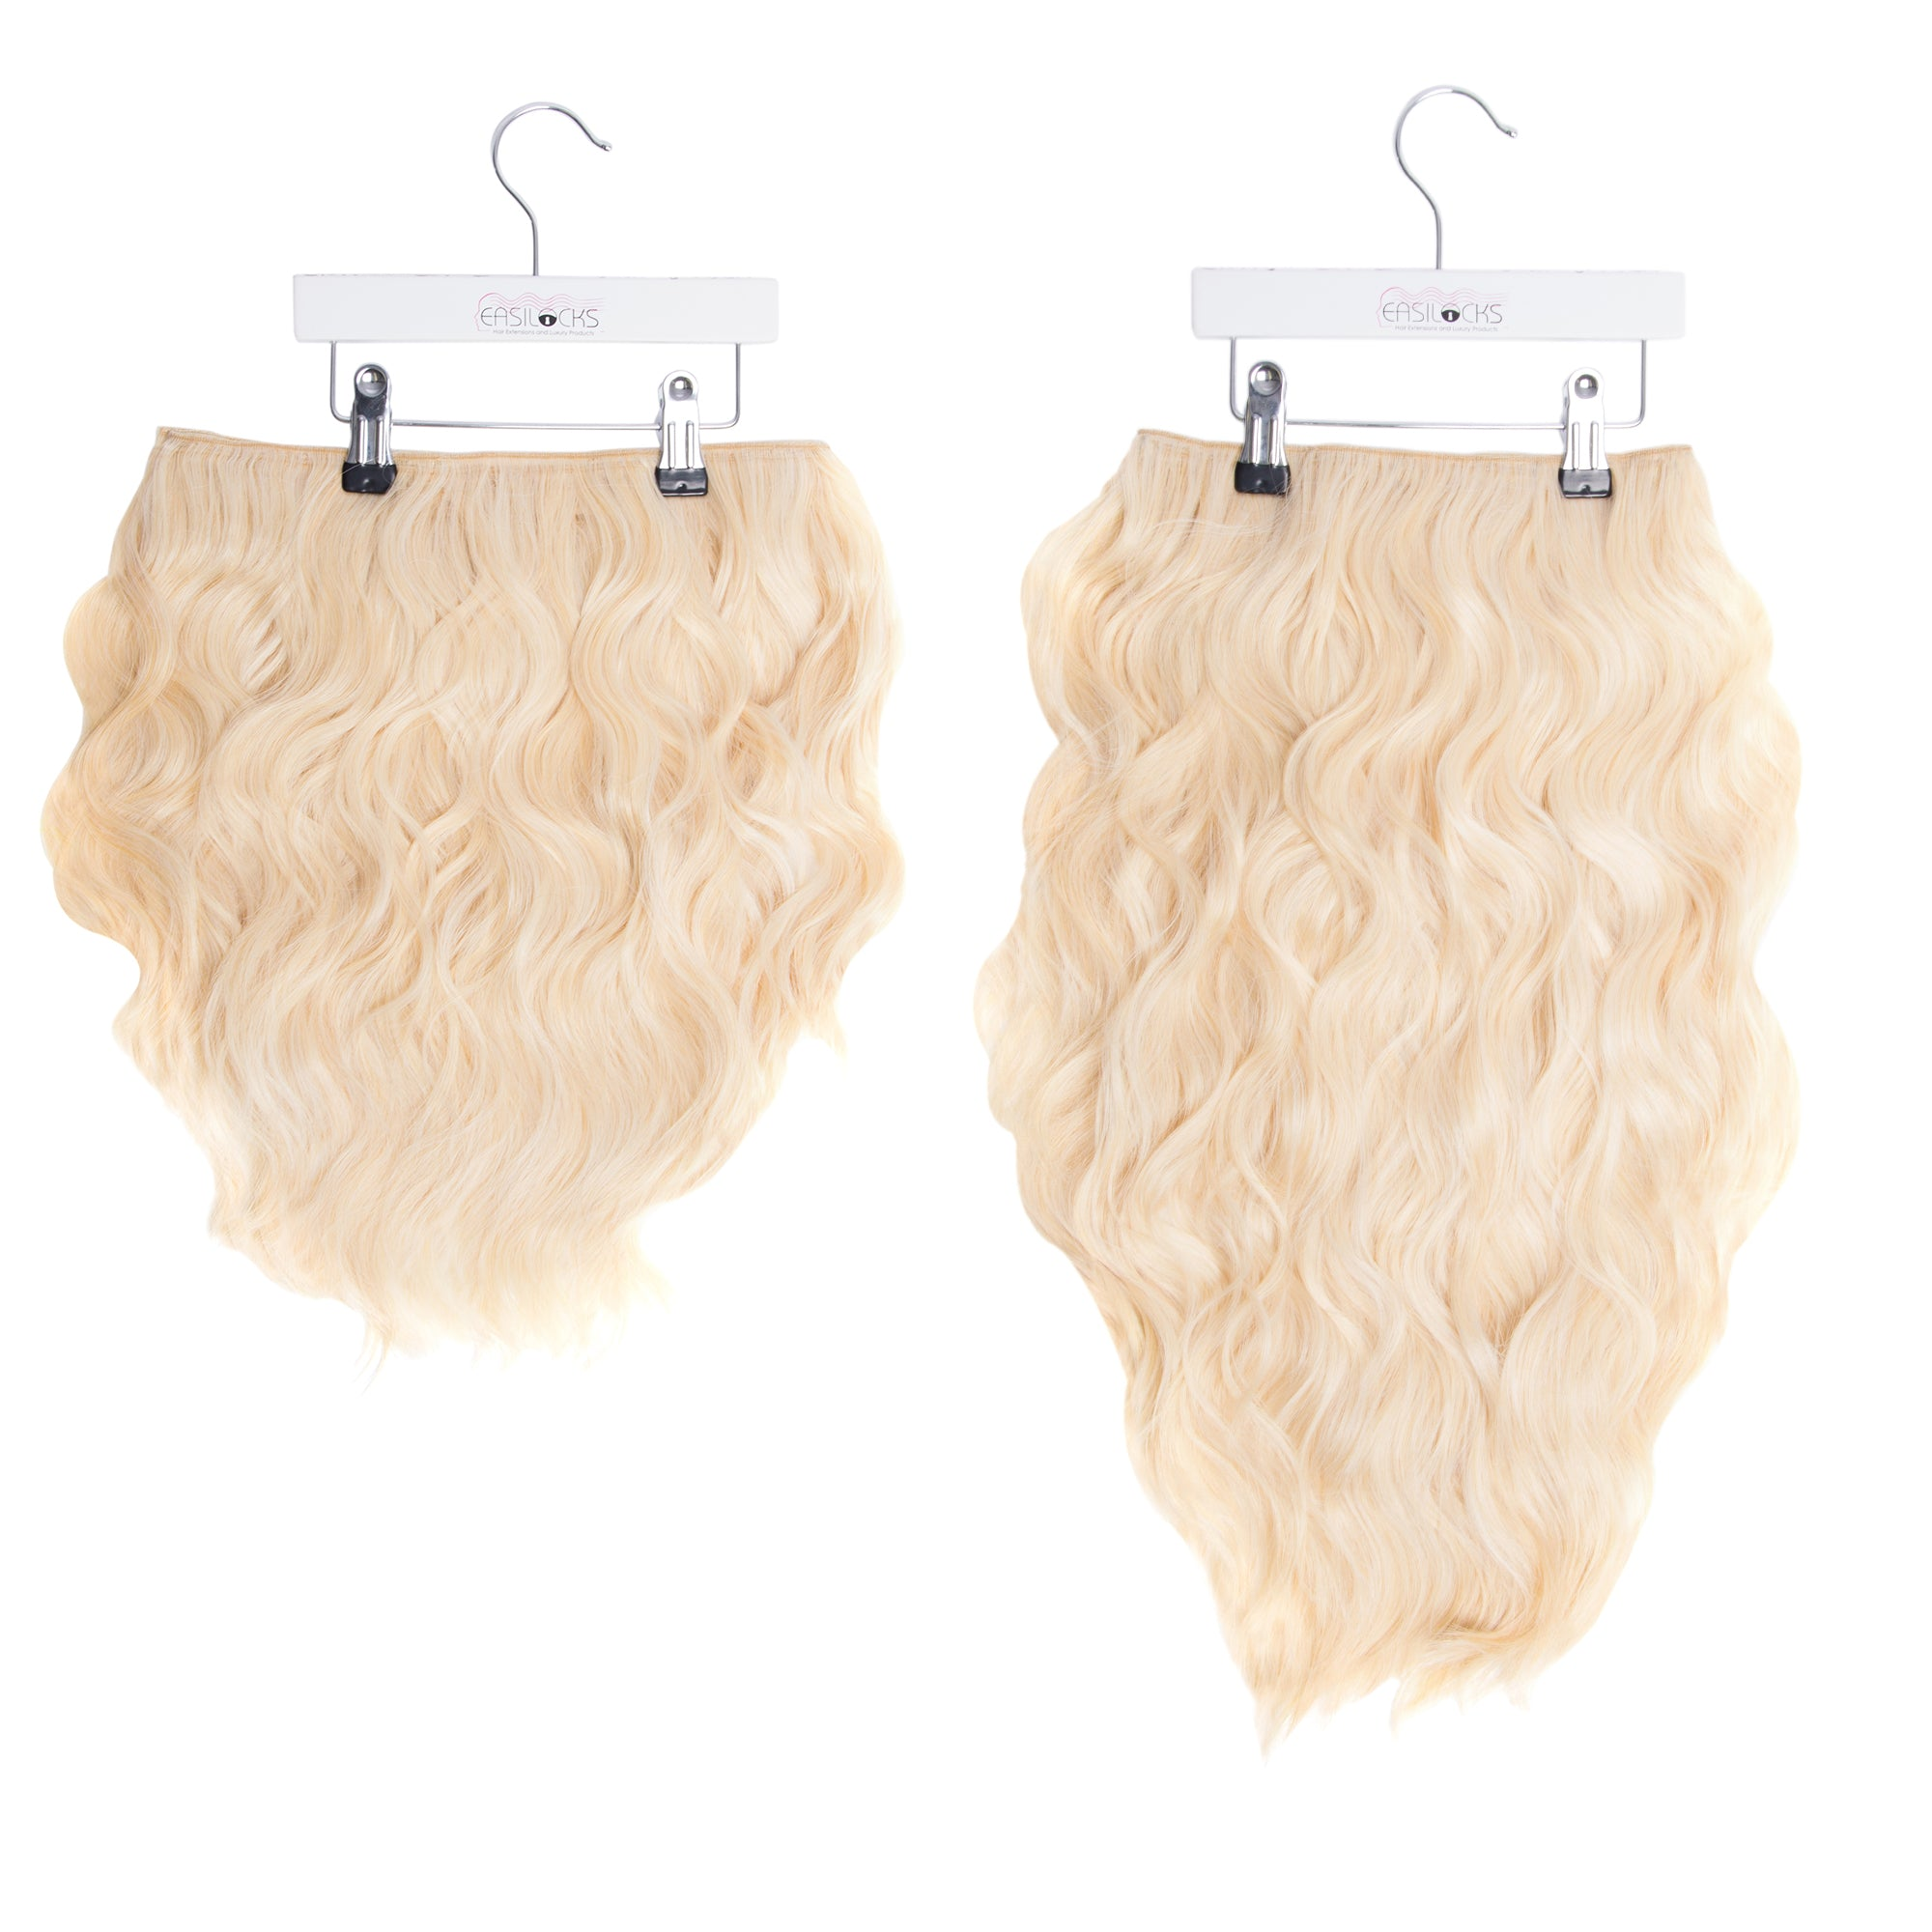 "Miracle Makeover HD Fibre Clip In Hair Extensions - 14"" & 22"" - Blonde Bombshell (1319147110480)"